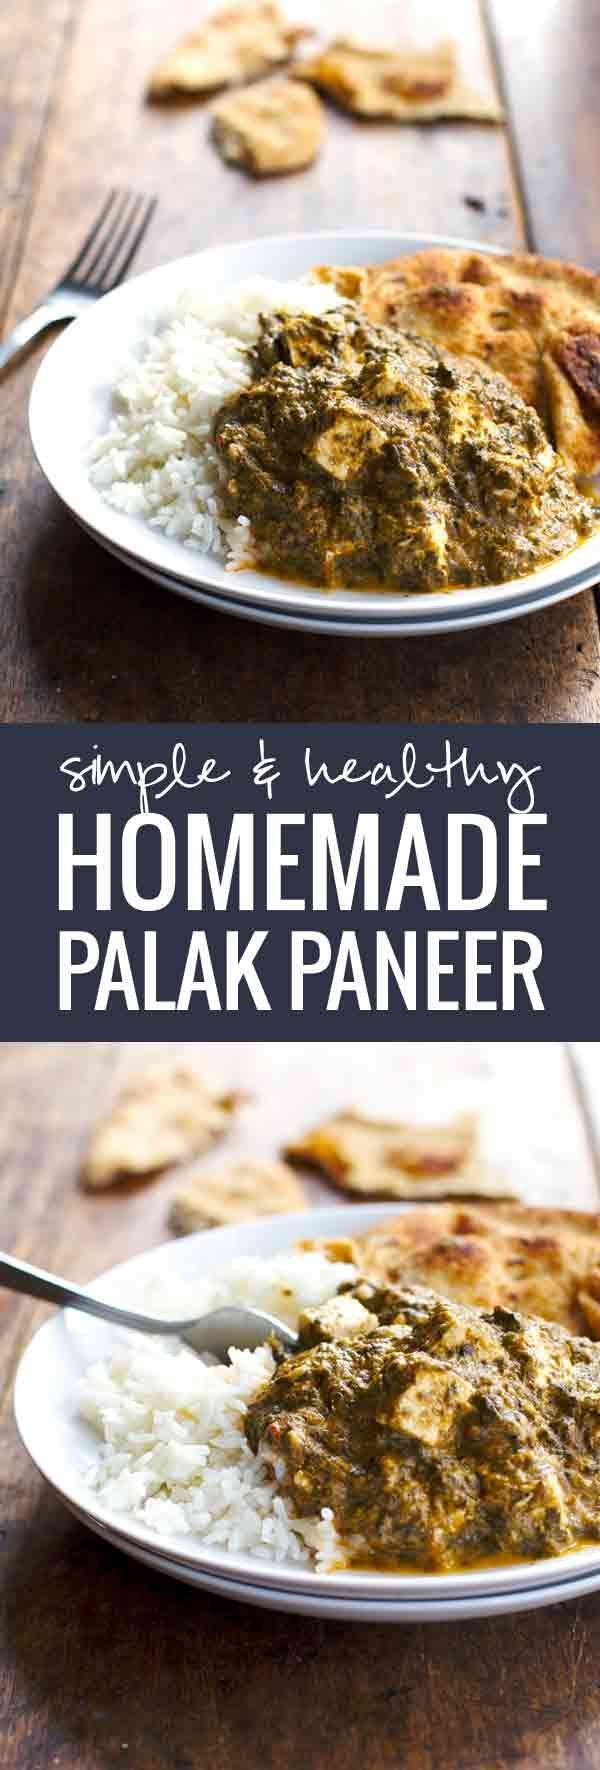 Simple & Healthy Homemade Palak Paneer - A delicious take on a favorite Indian dish.